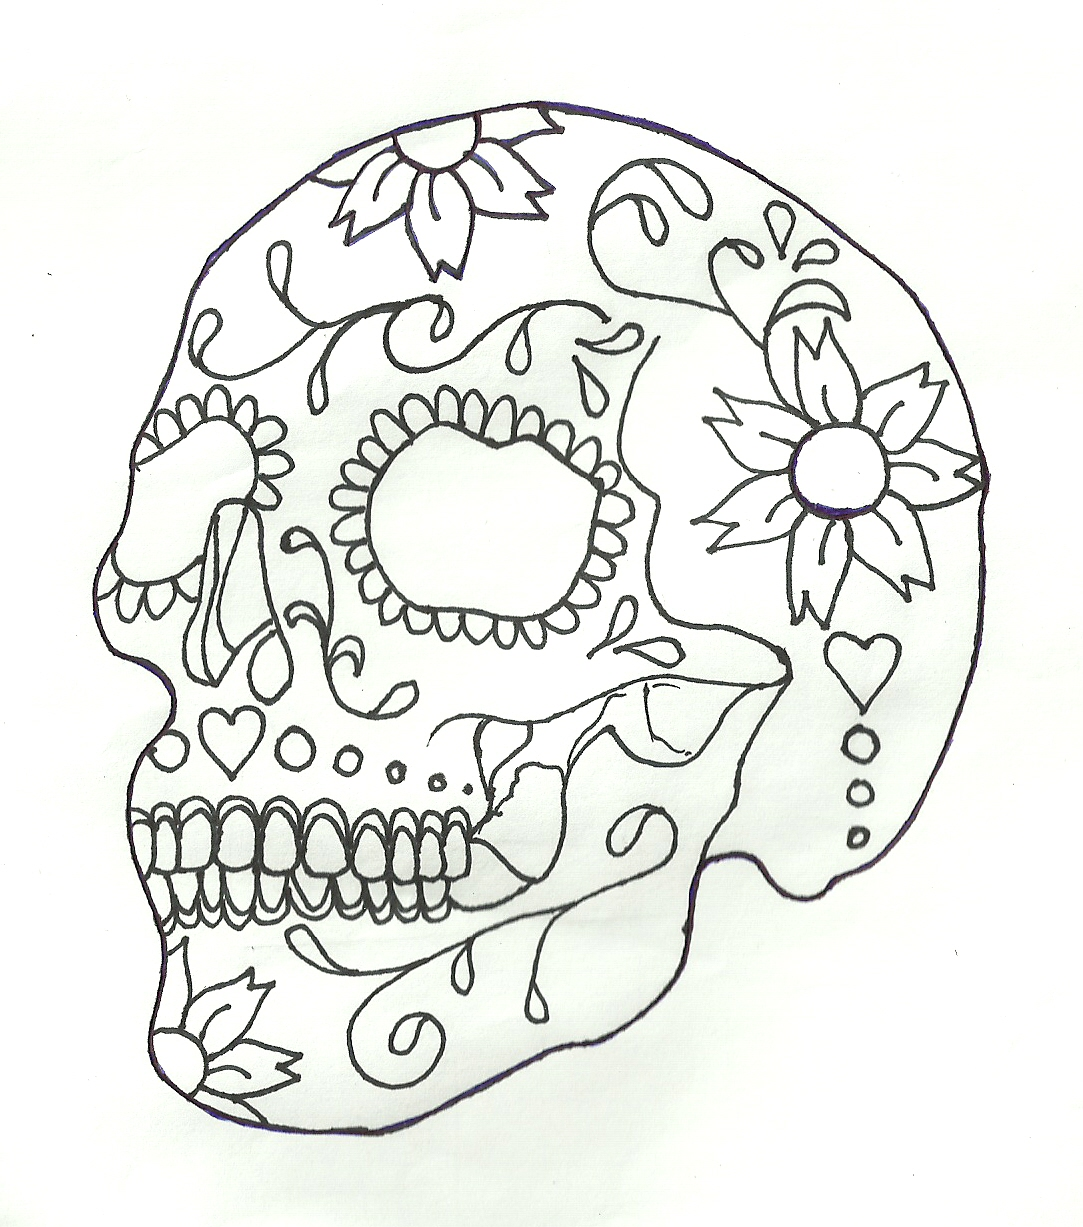 1083x1227 Sugar Skull Tattoo Sugar Skulls, Sugar Skull Tattoos And Sugar